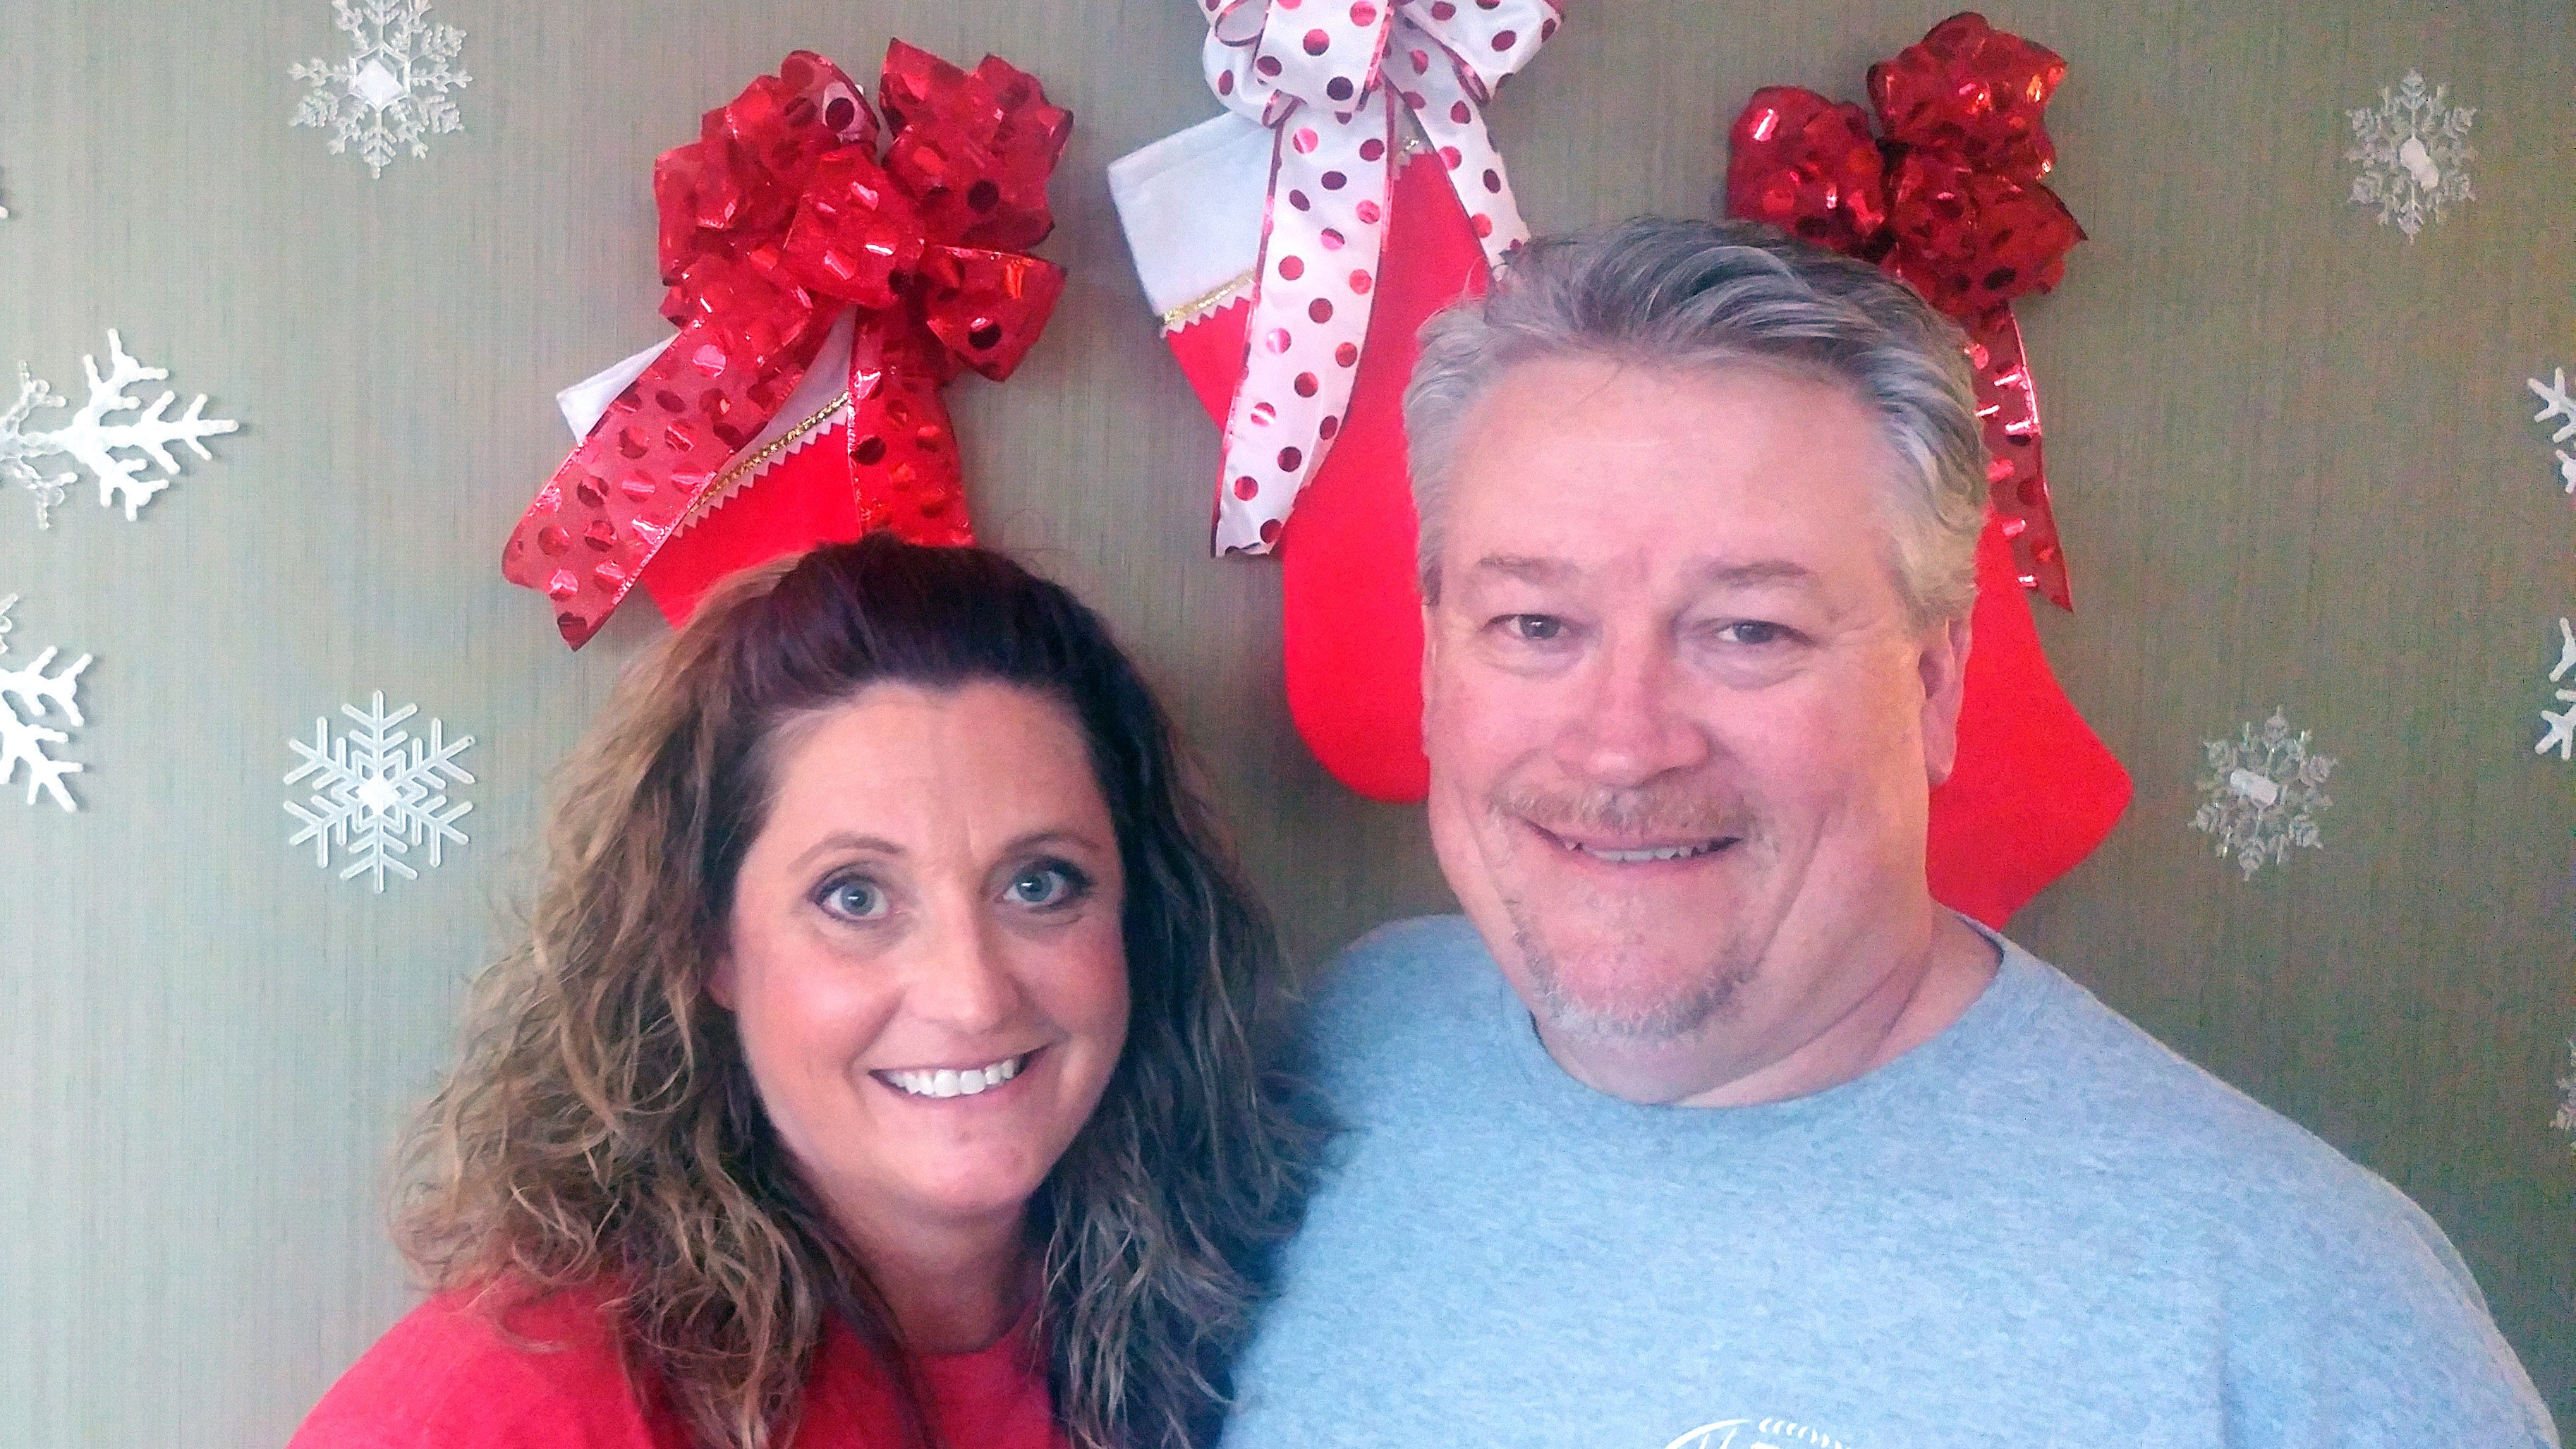 Cancerwise blog post: Prostate cancer survivor returns to decorate MD Anderson in Sugar Land for the holidays after treatment